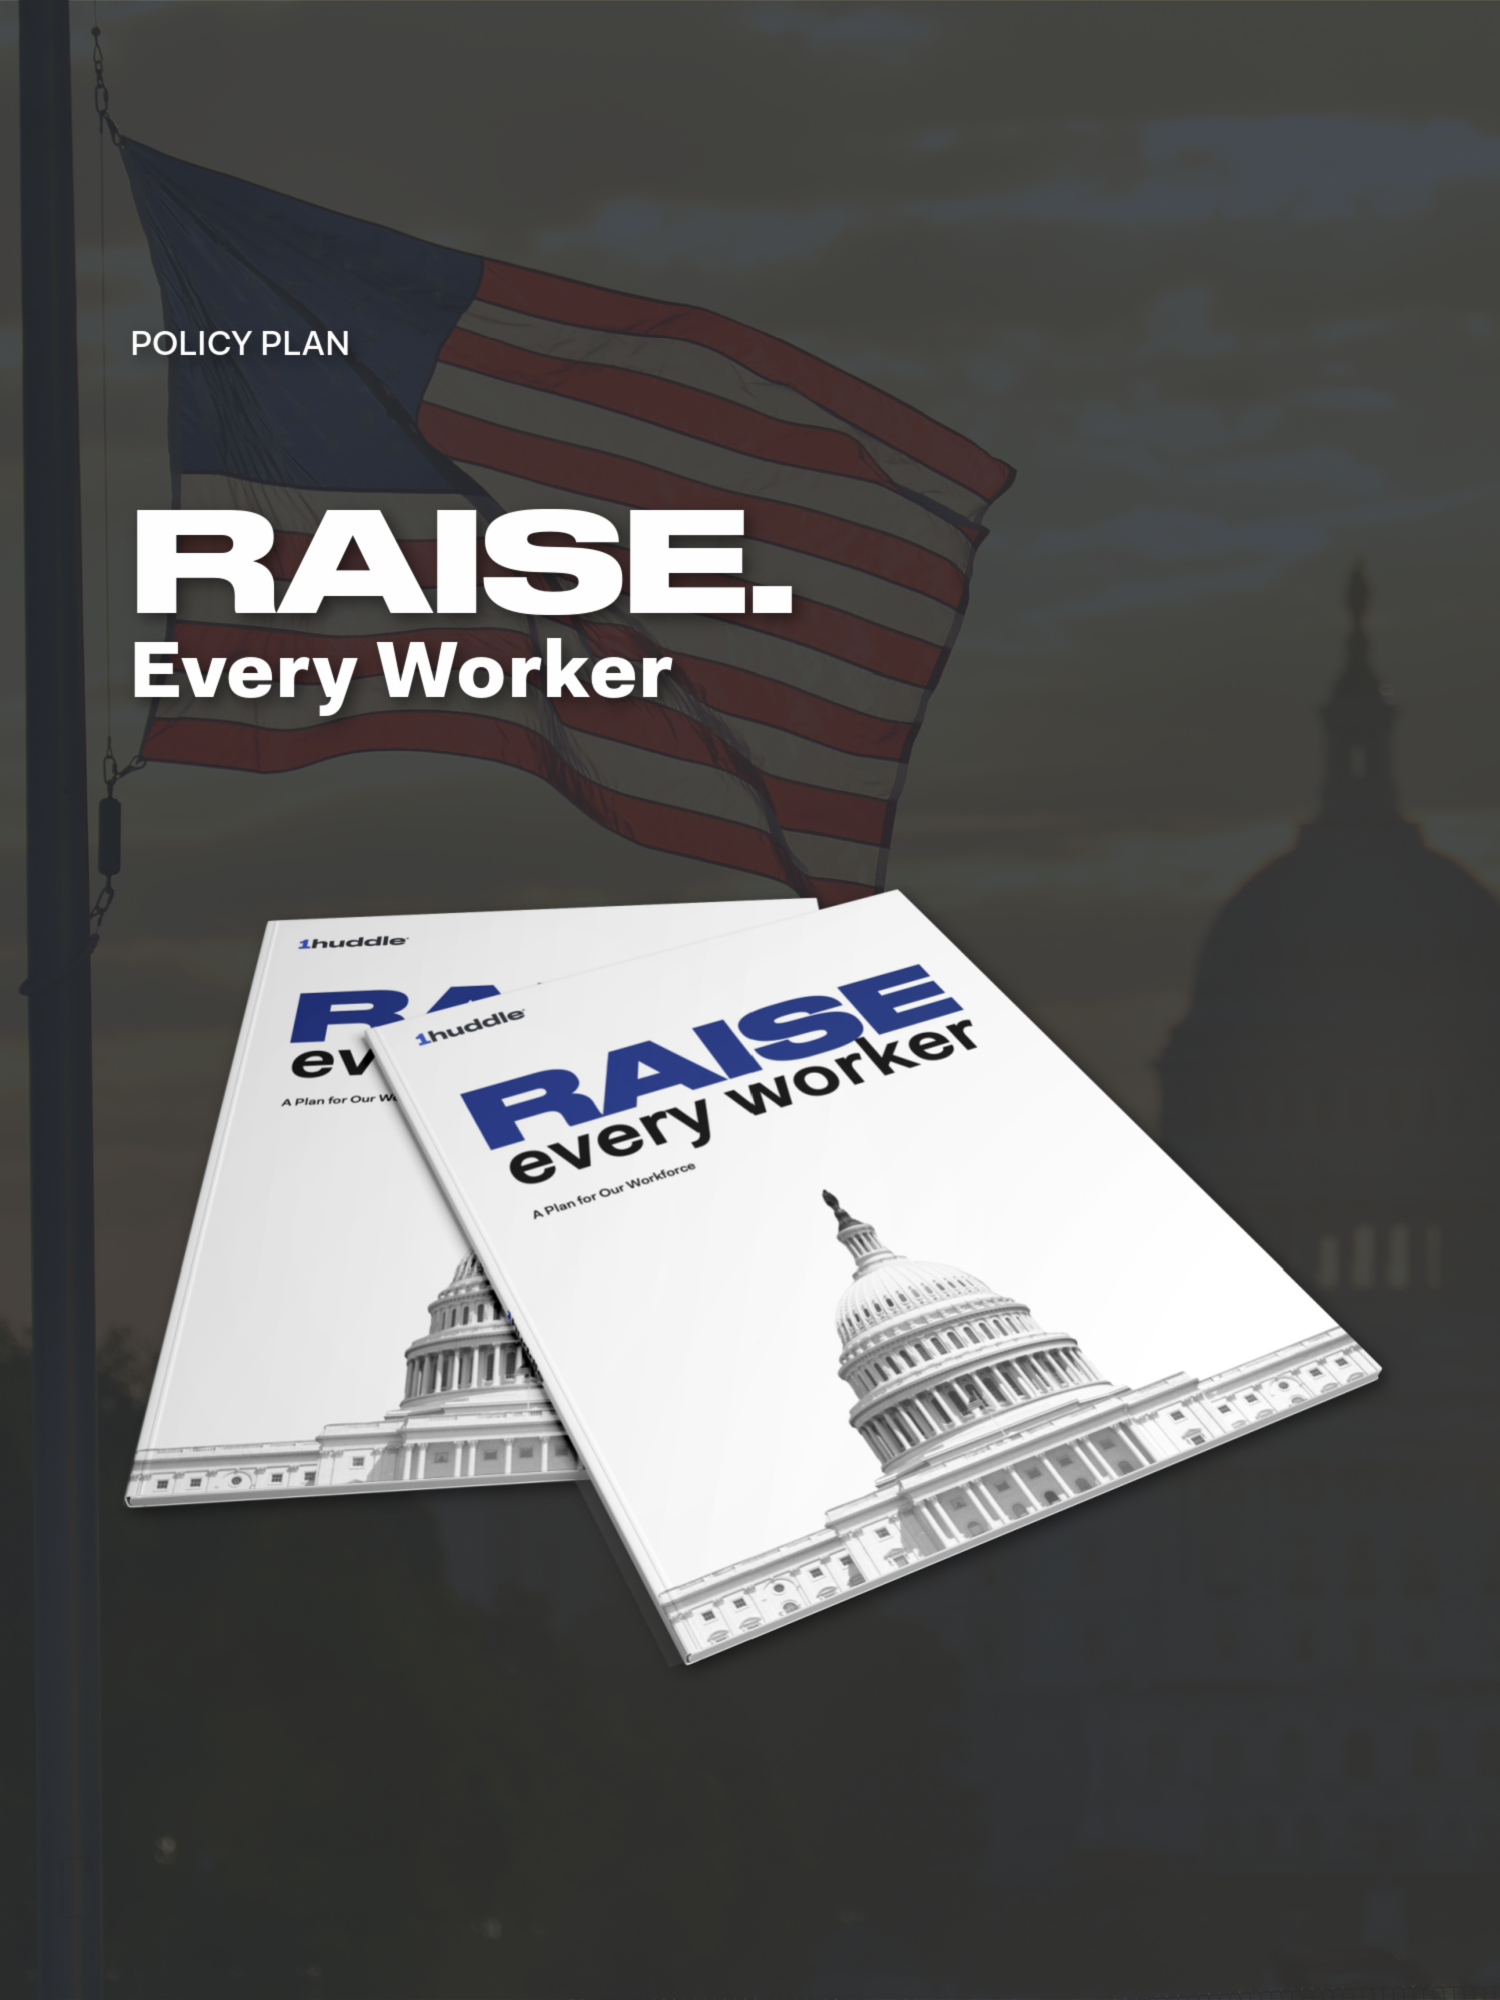 RAISE Every Worker